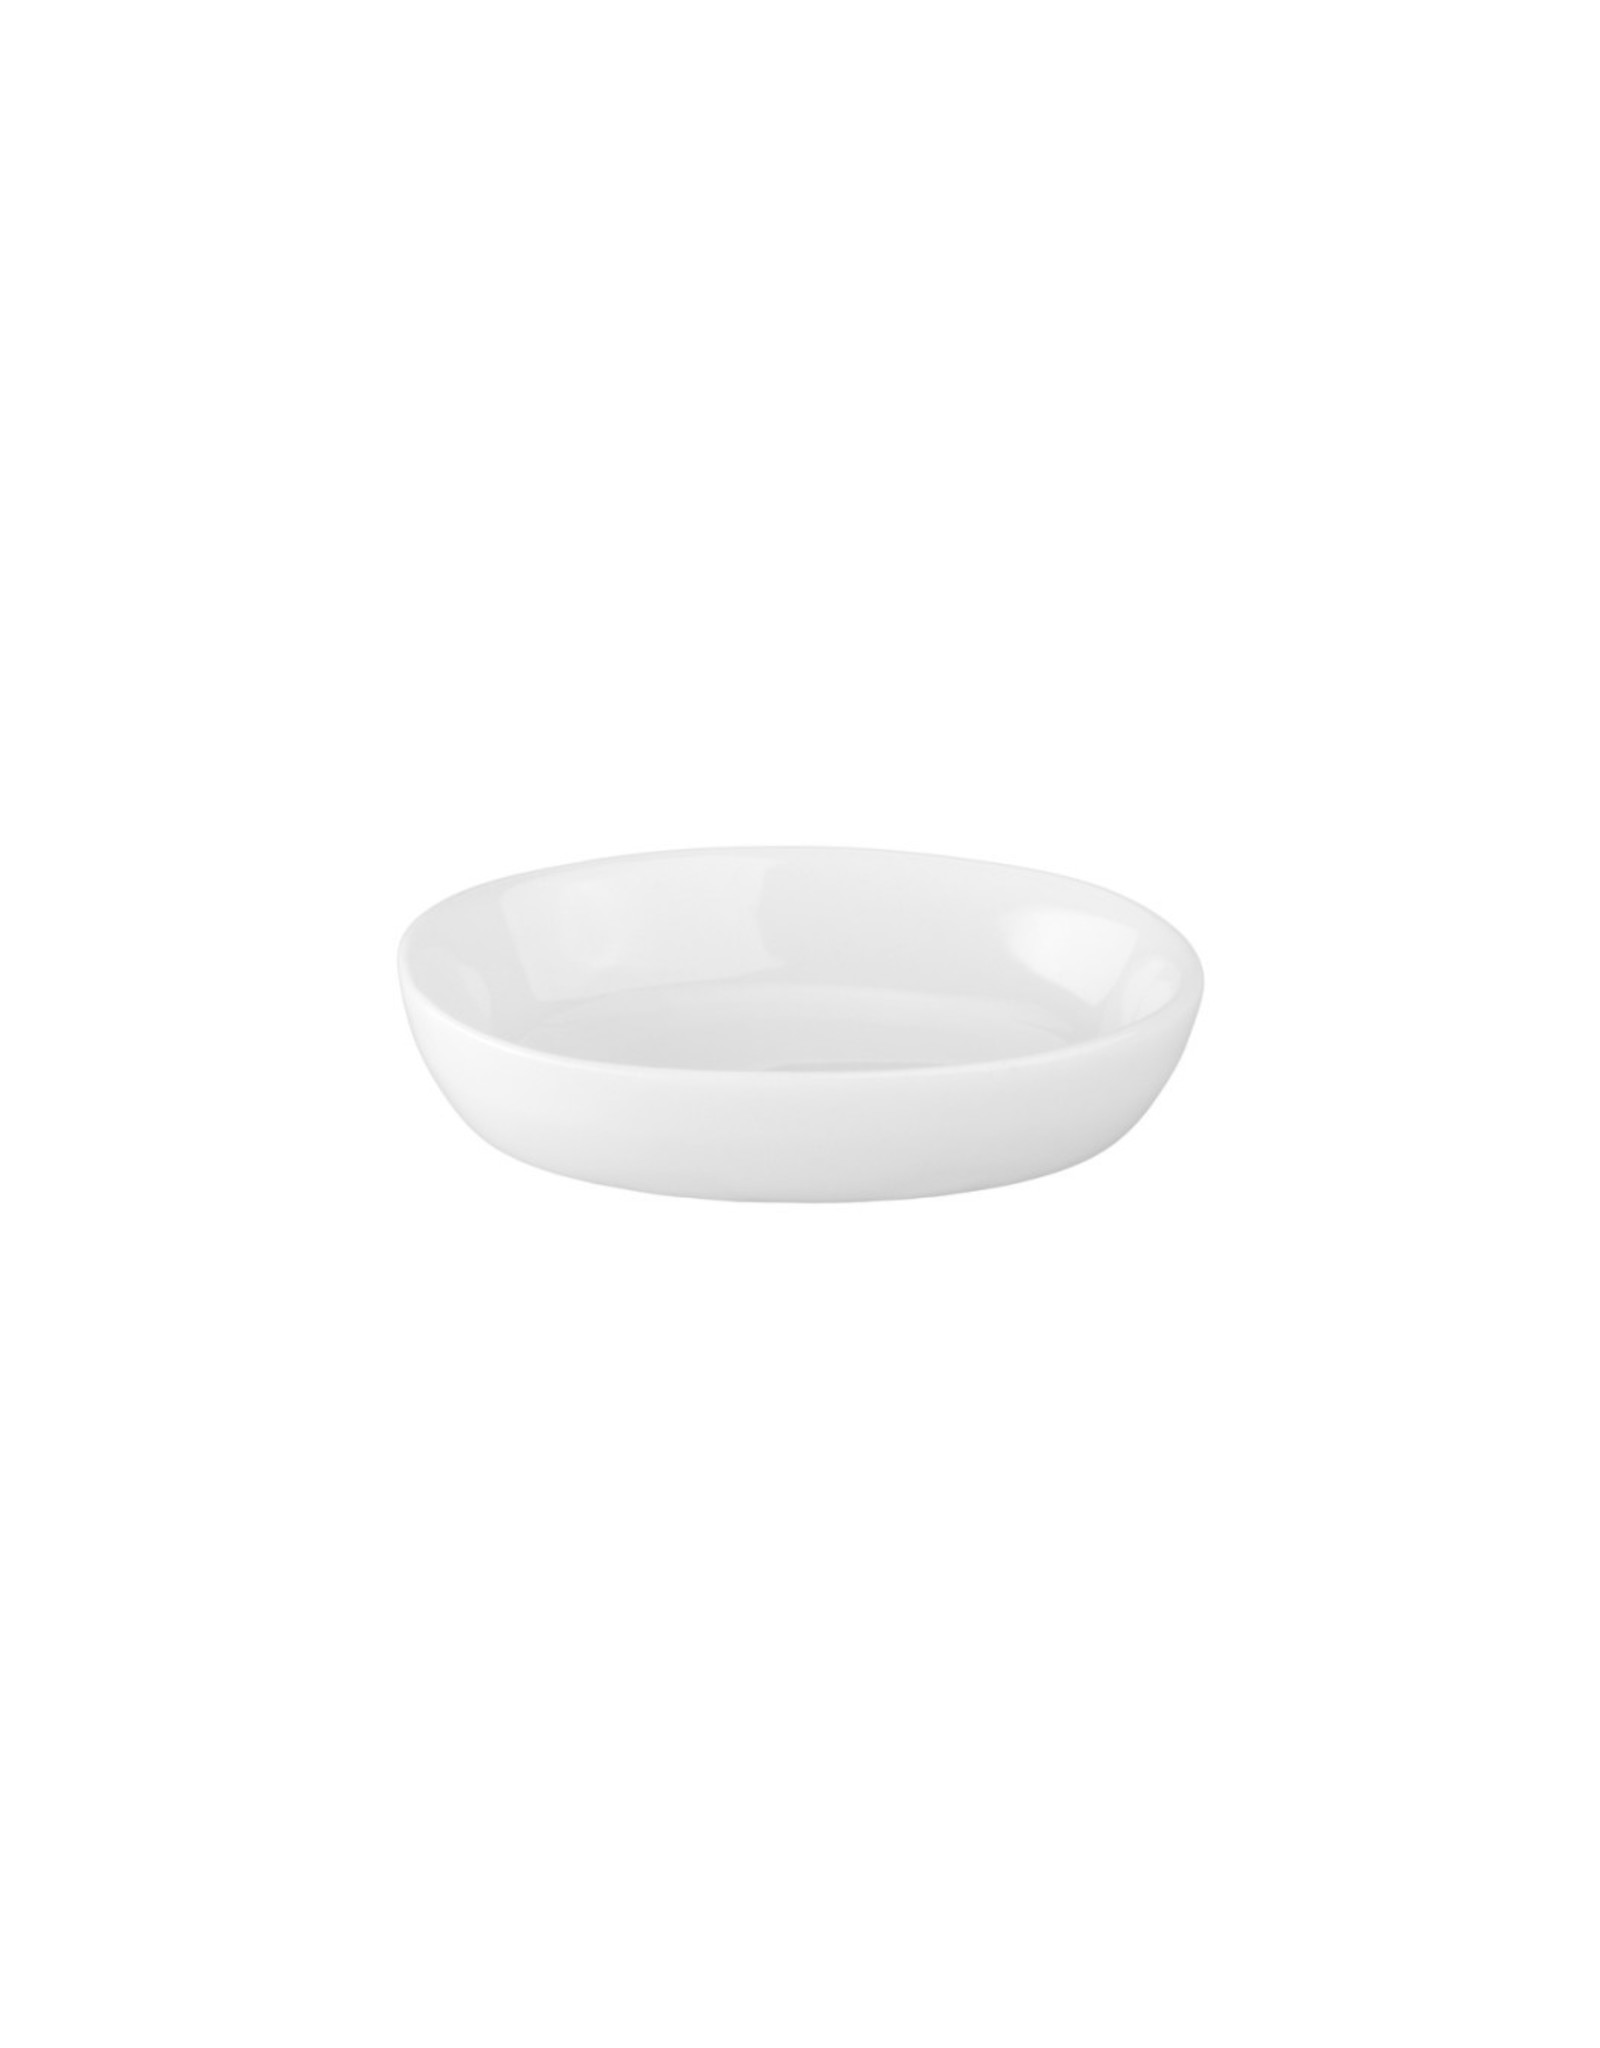 BOWL DIPPING OVAL 1.5 OZ